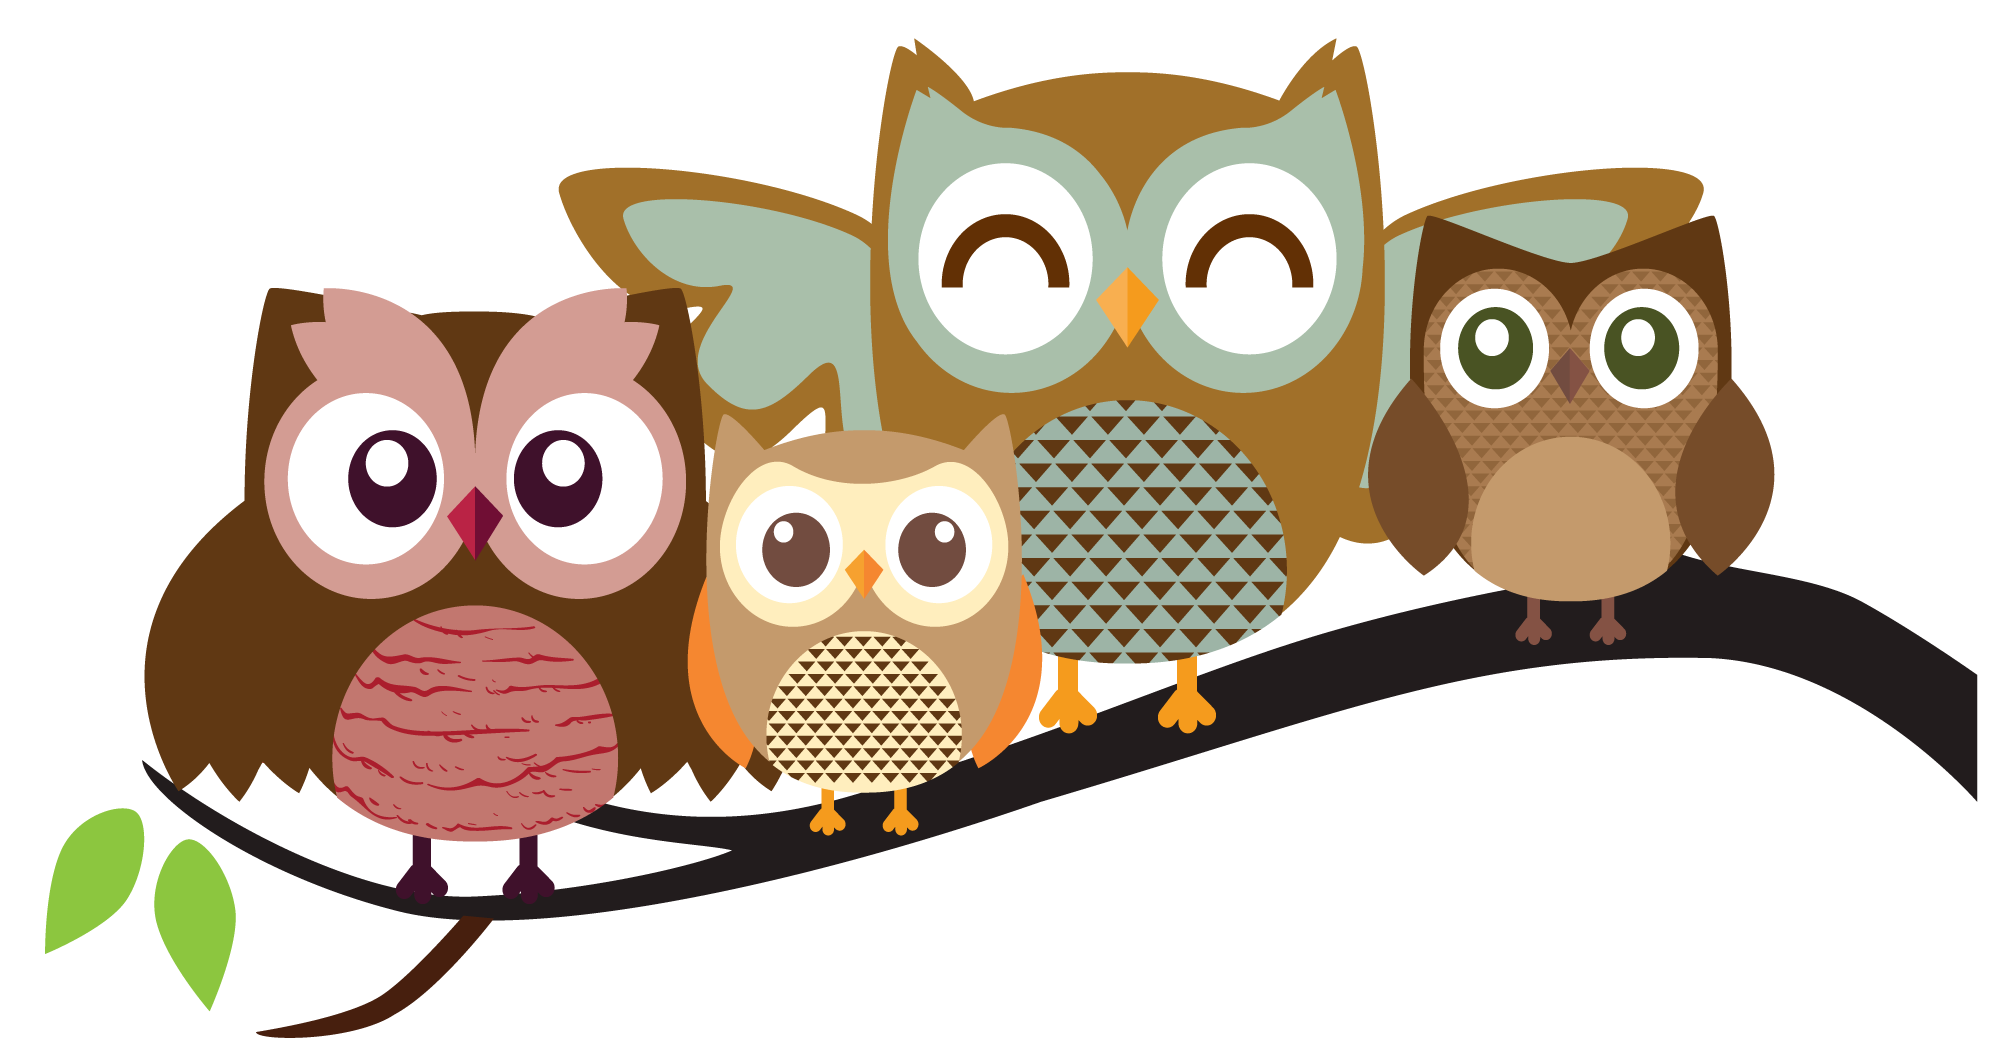 Owl cartoon png. Authentic owls pictures cartoons